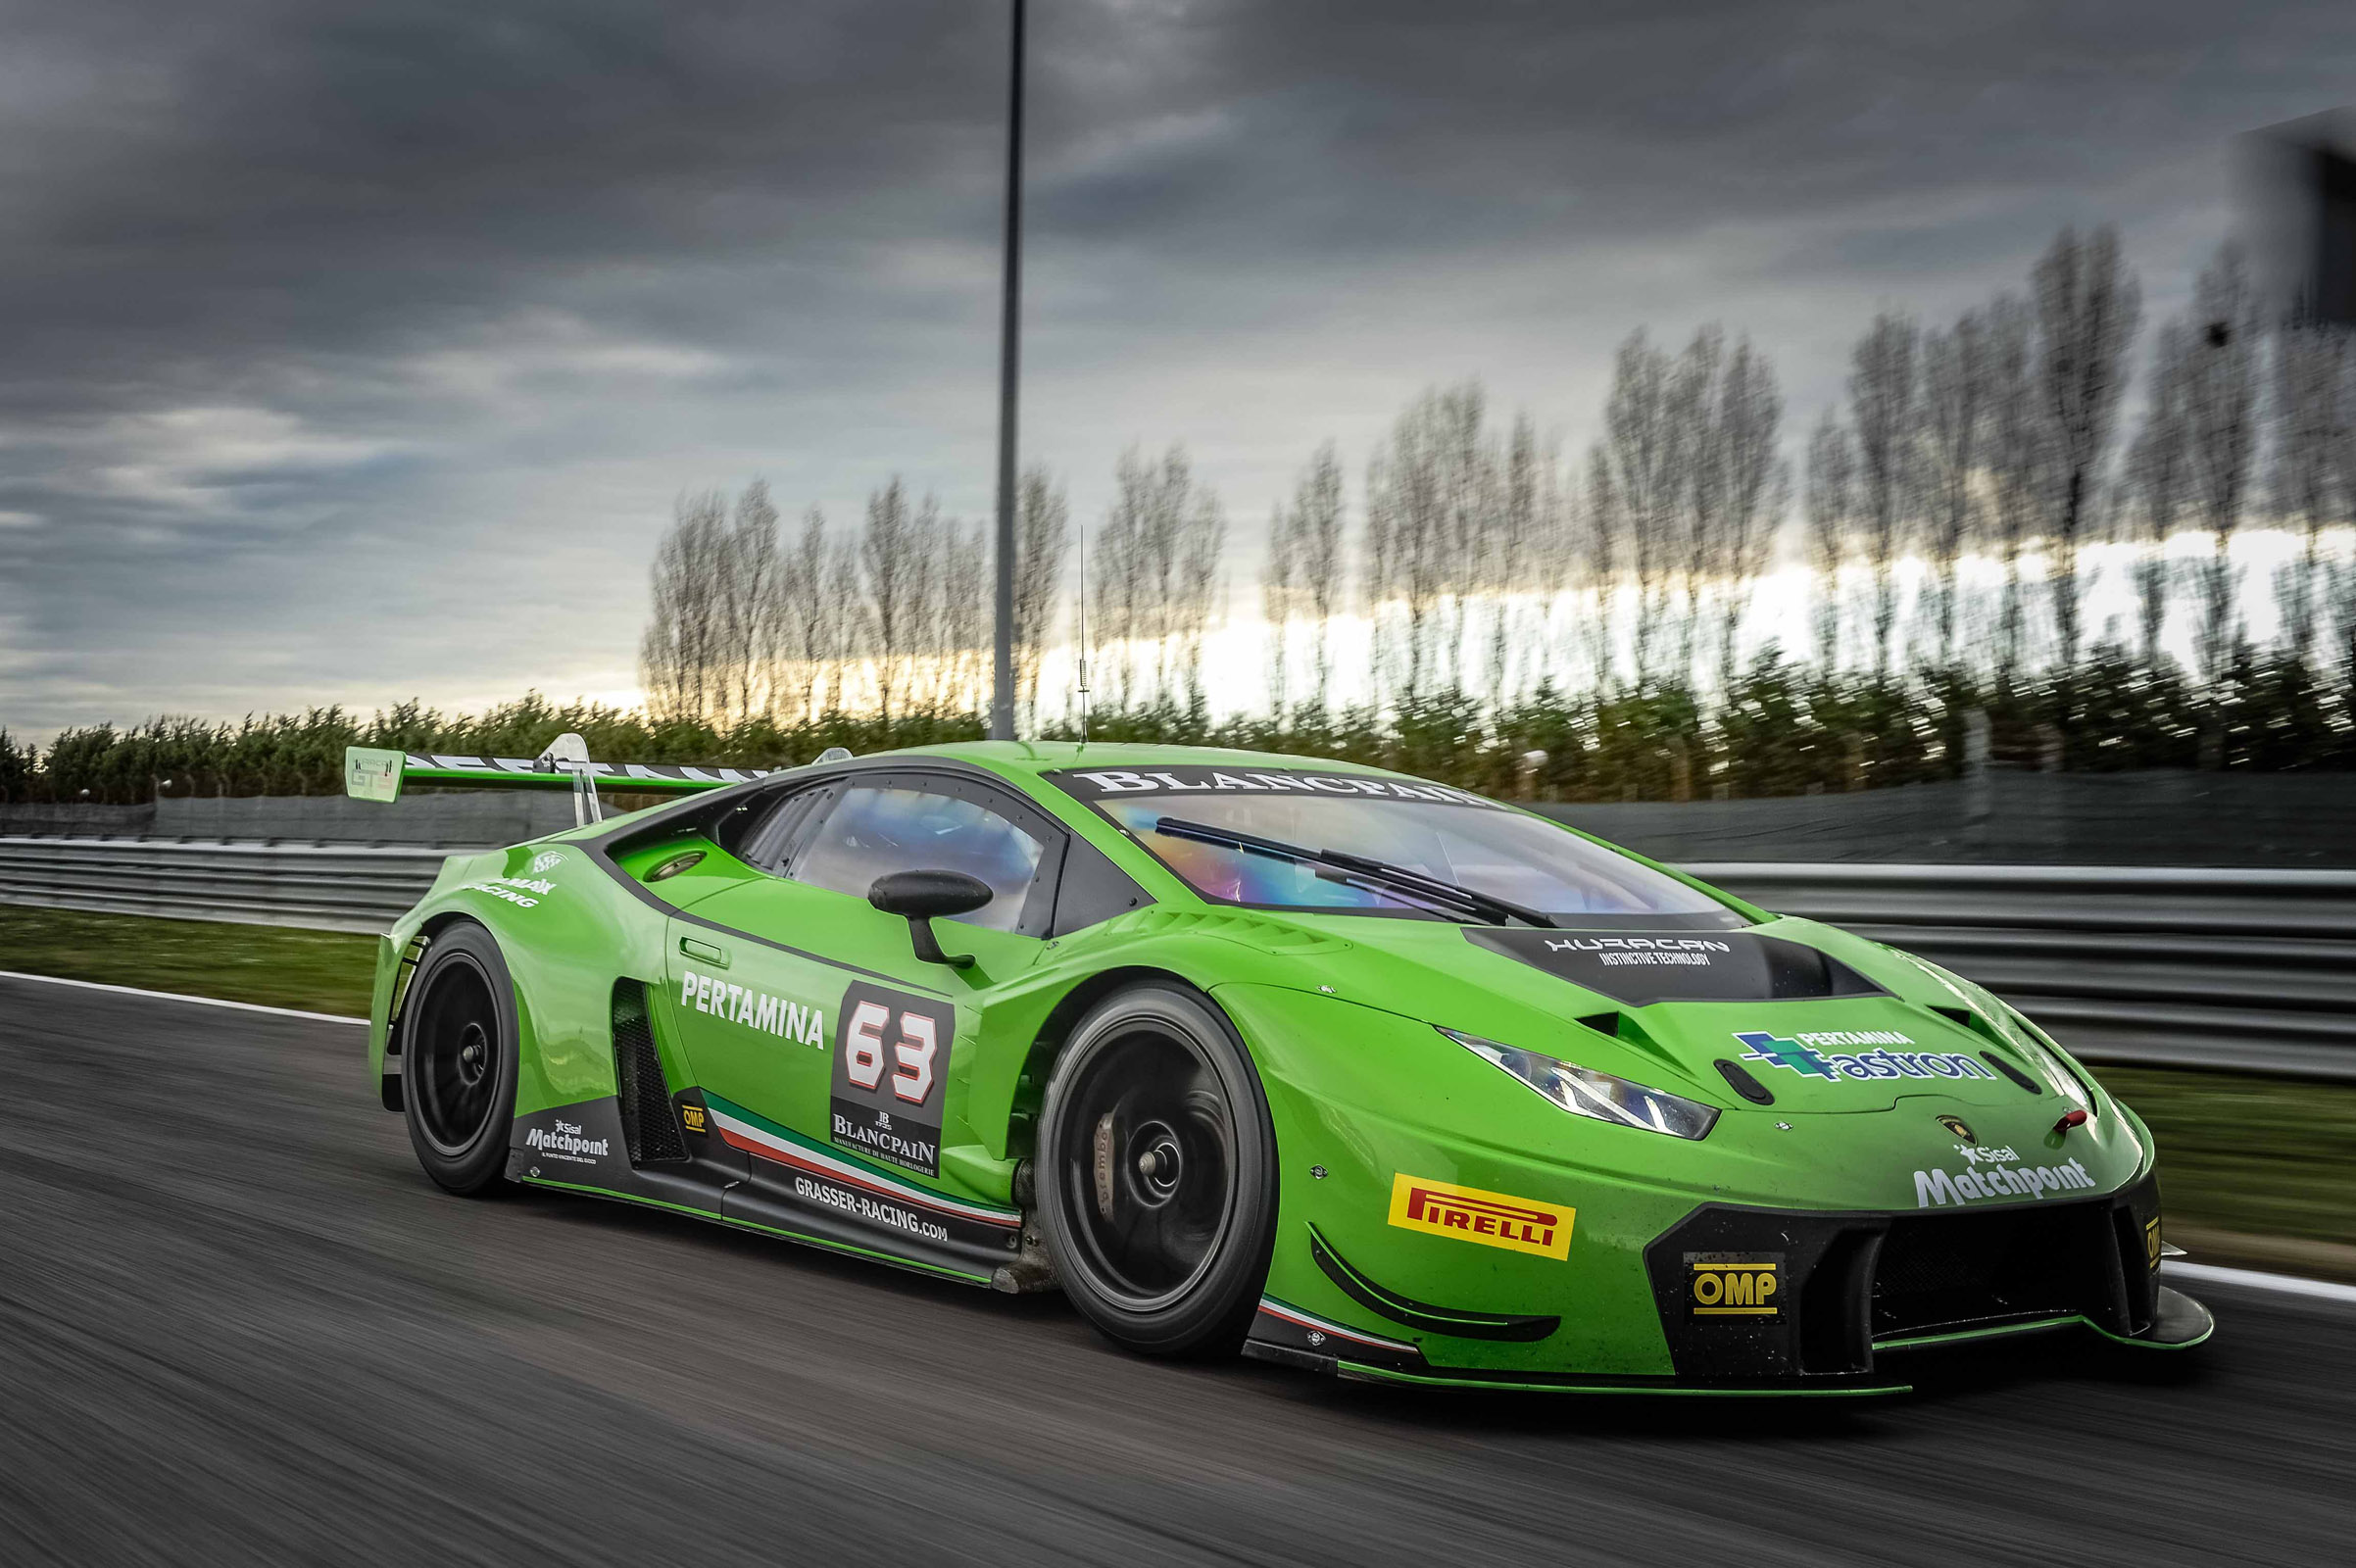 Lamborghini Huracan Gt3 To Make North American Gt3 Racing